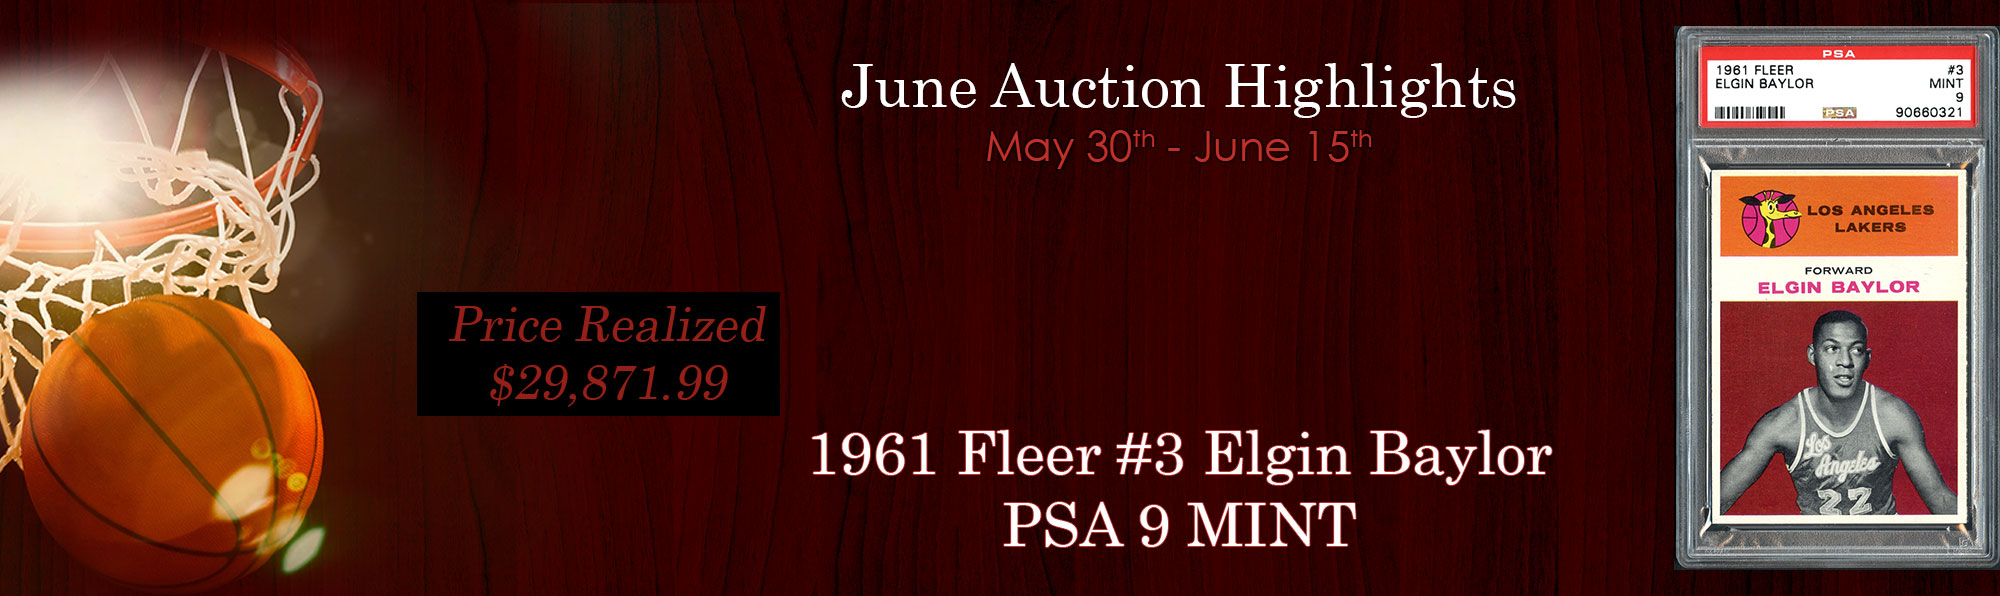 Thank you for participating in another amazing auction